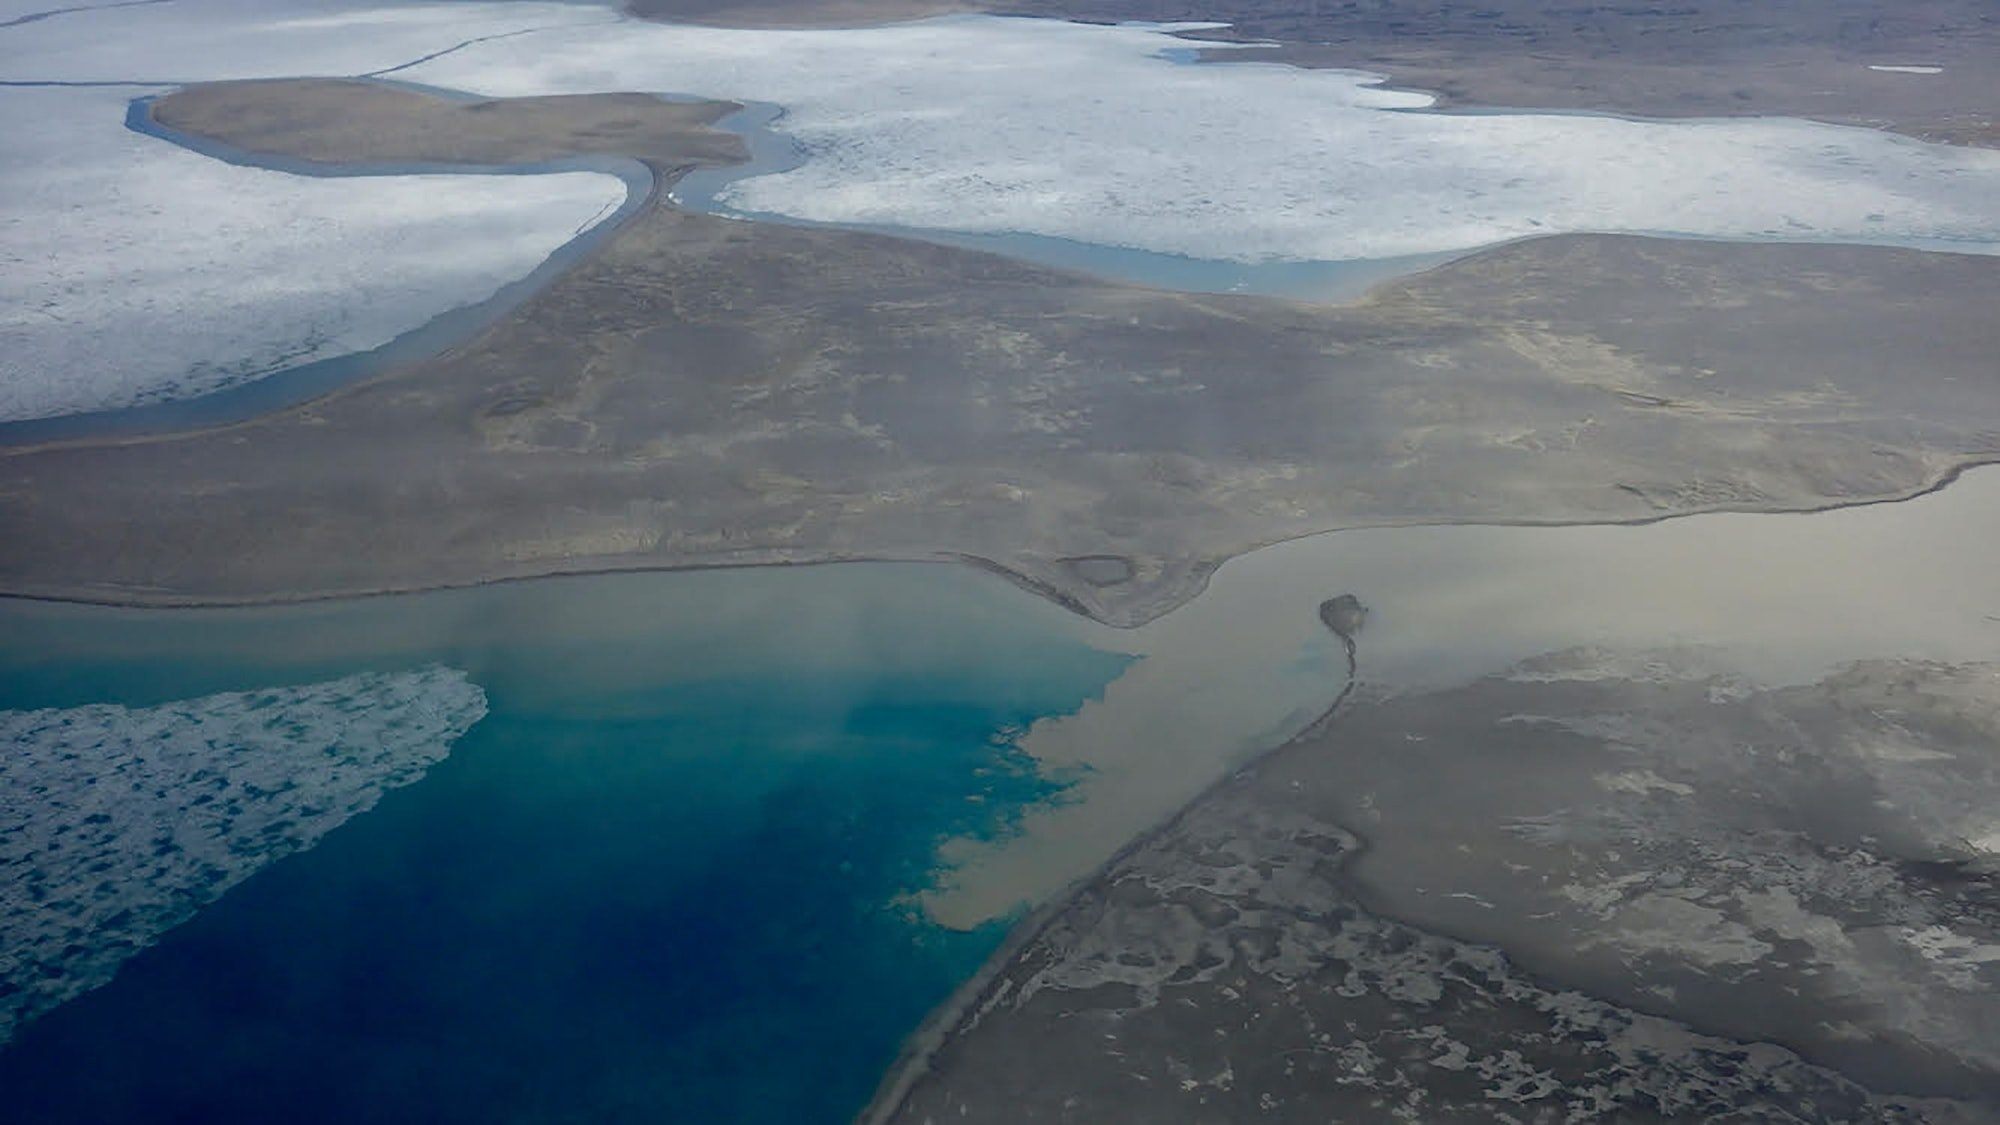 The researchers examined the watershed of Lake Hazen, an Arctic lake in Canada that's fed by several glaciers.